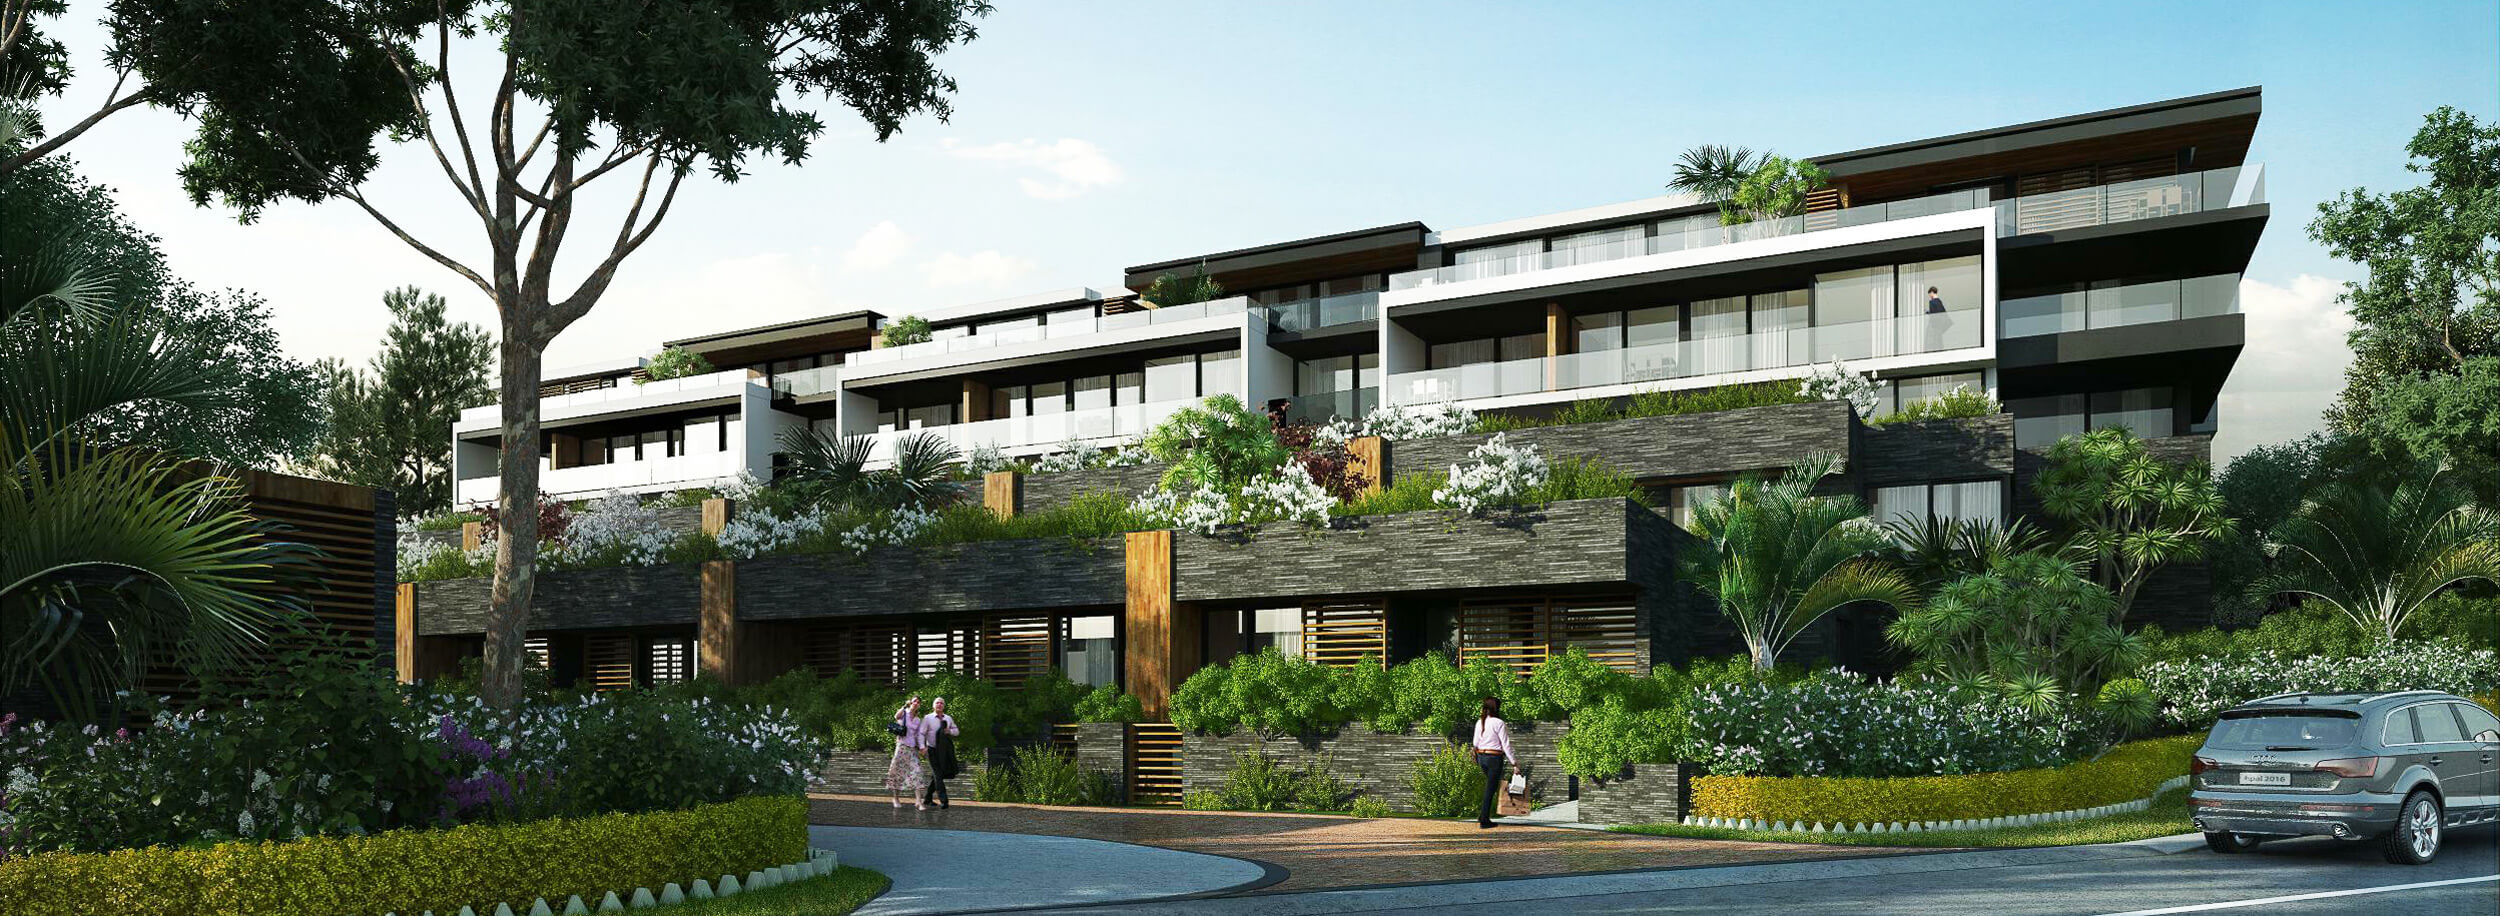 Wood Glen Aged Care Apartments